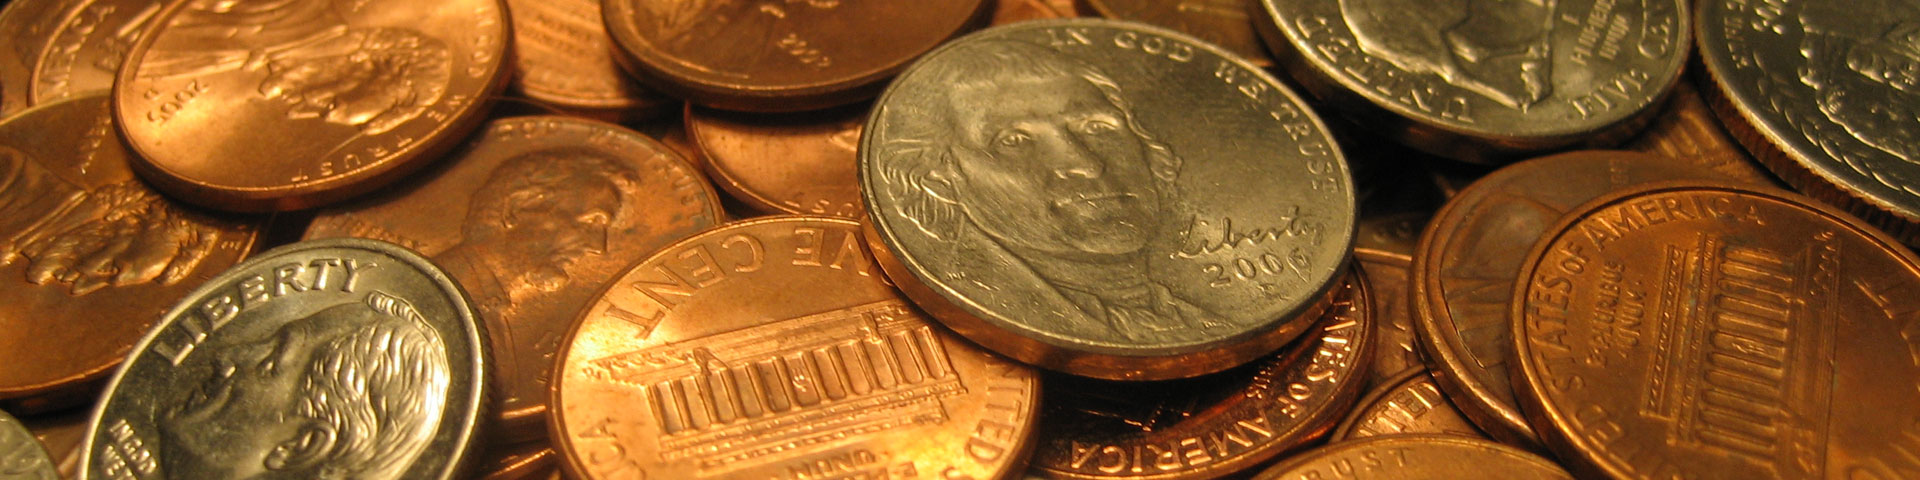 Numerous coins - pennies, nickels, and dimes - fill the photo.